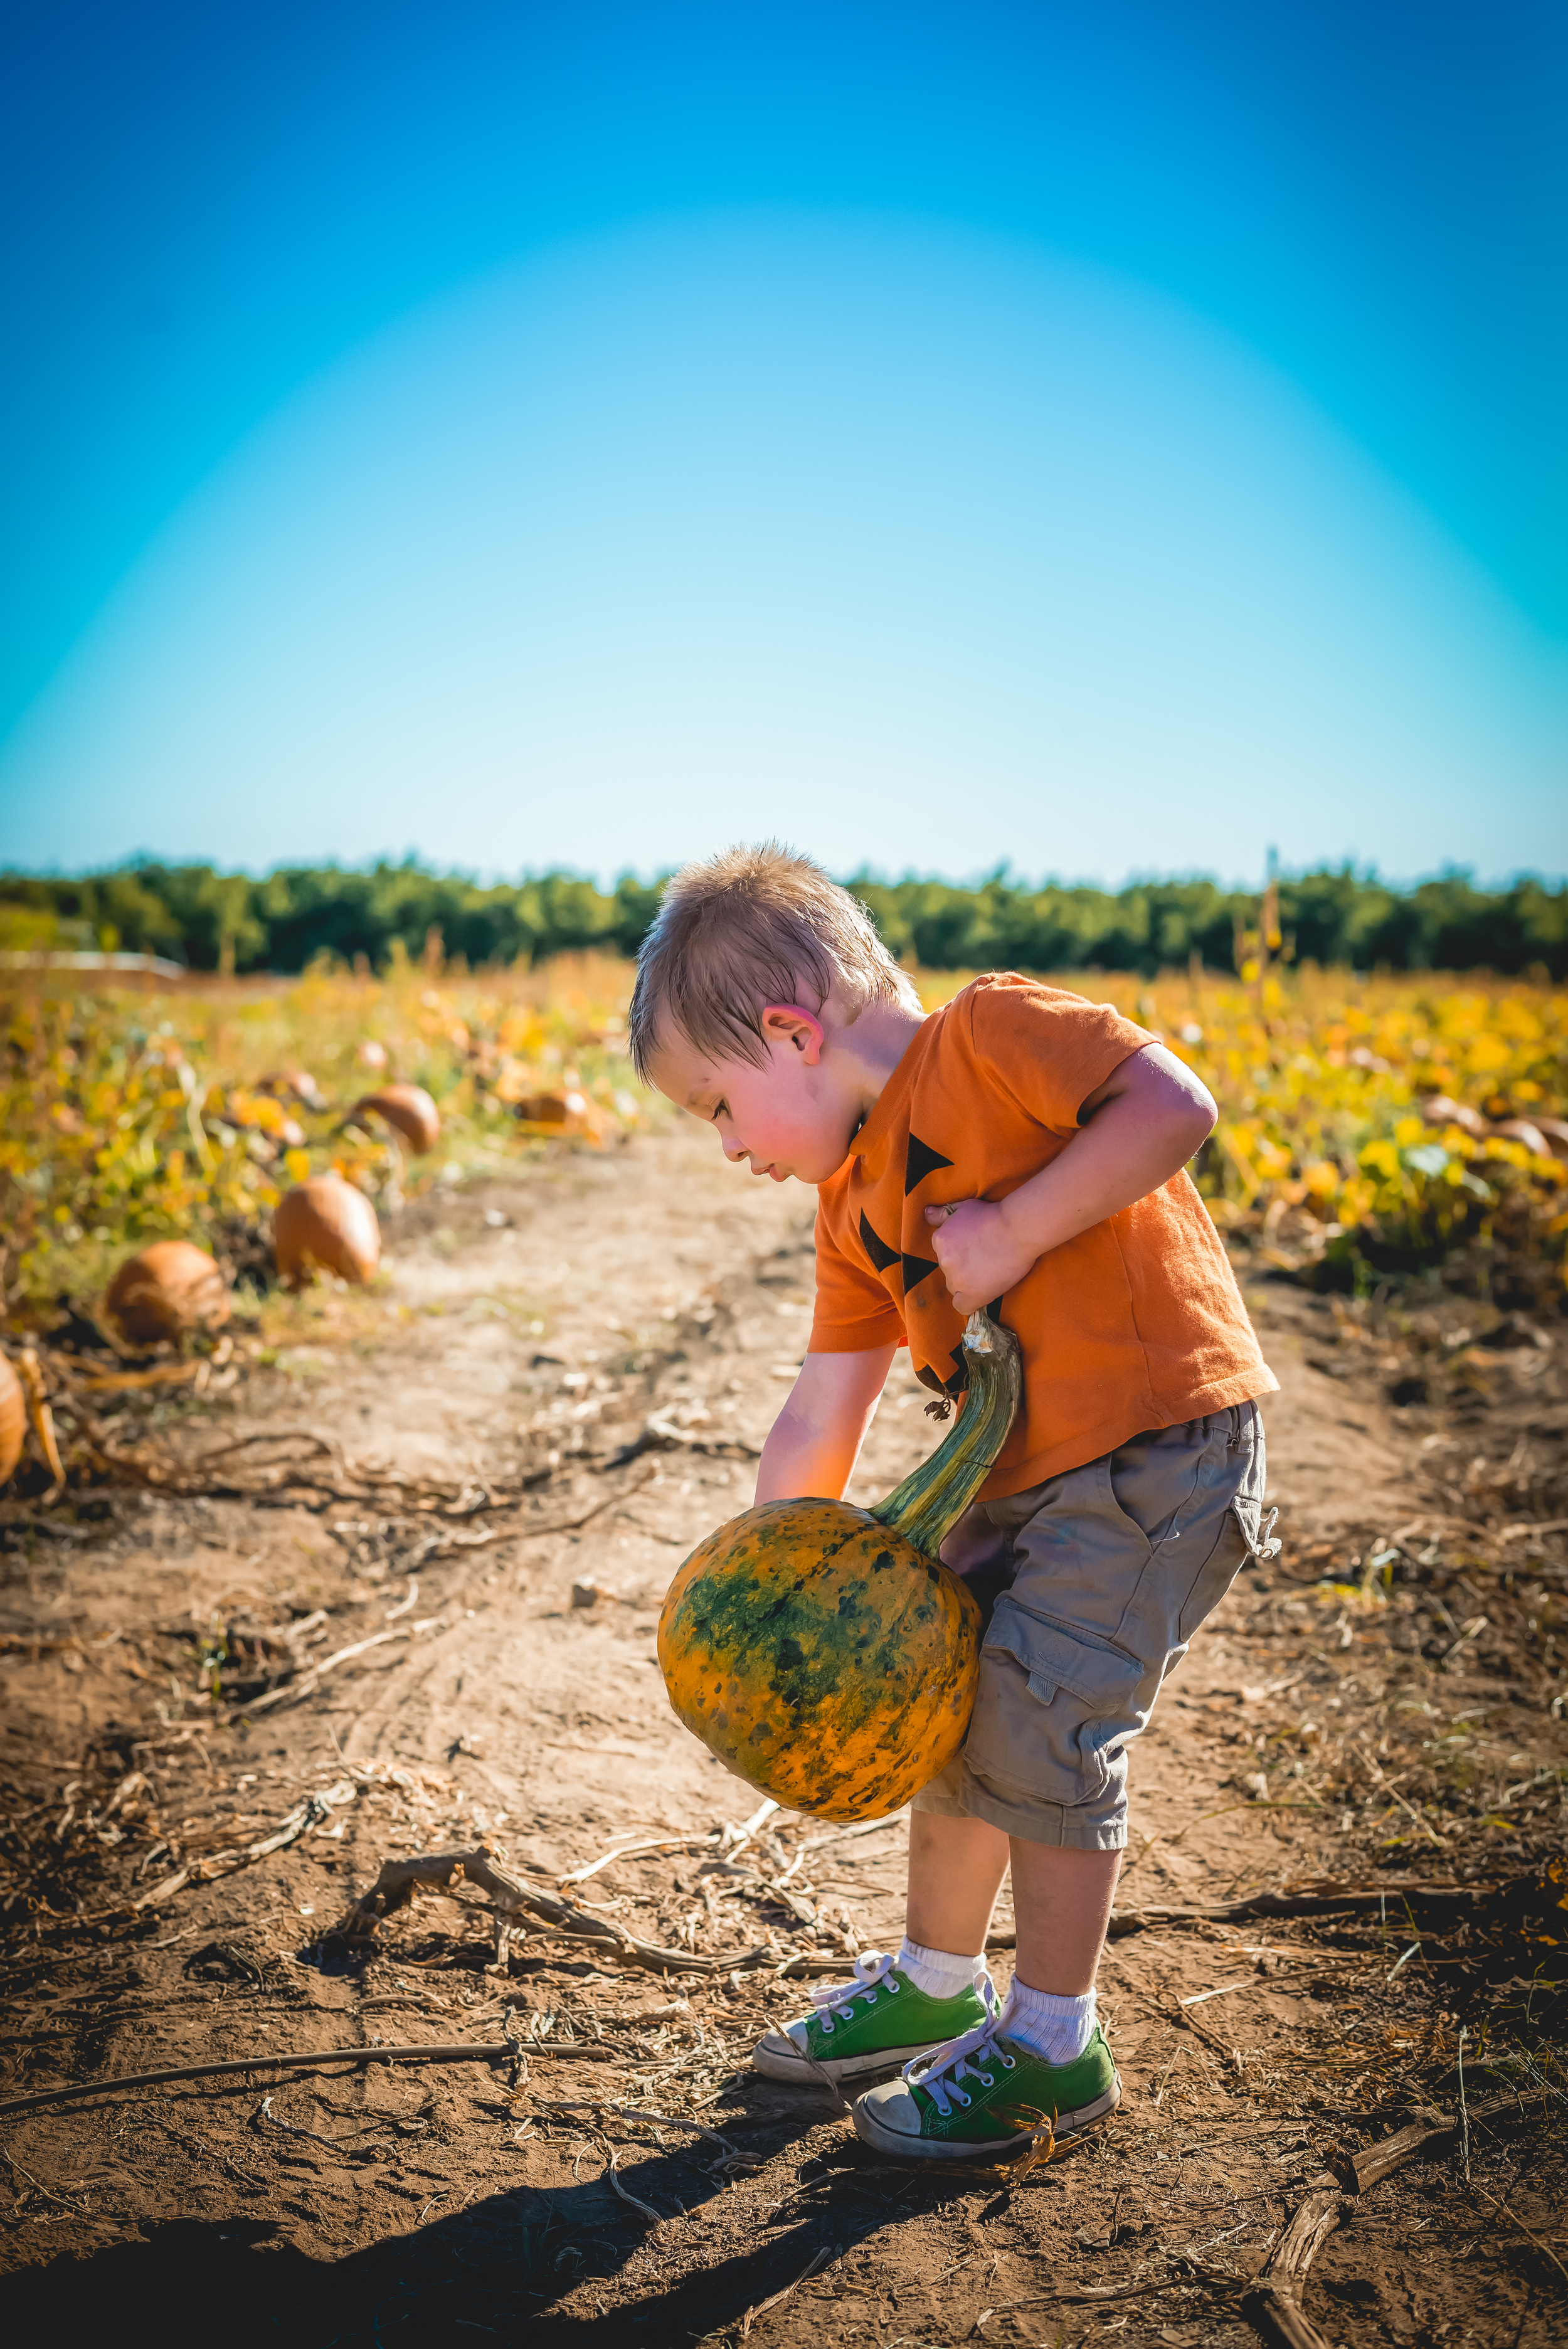 Picking out his pumpkin on a hot October day!